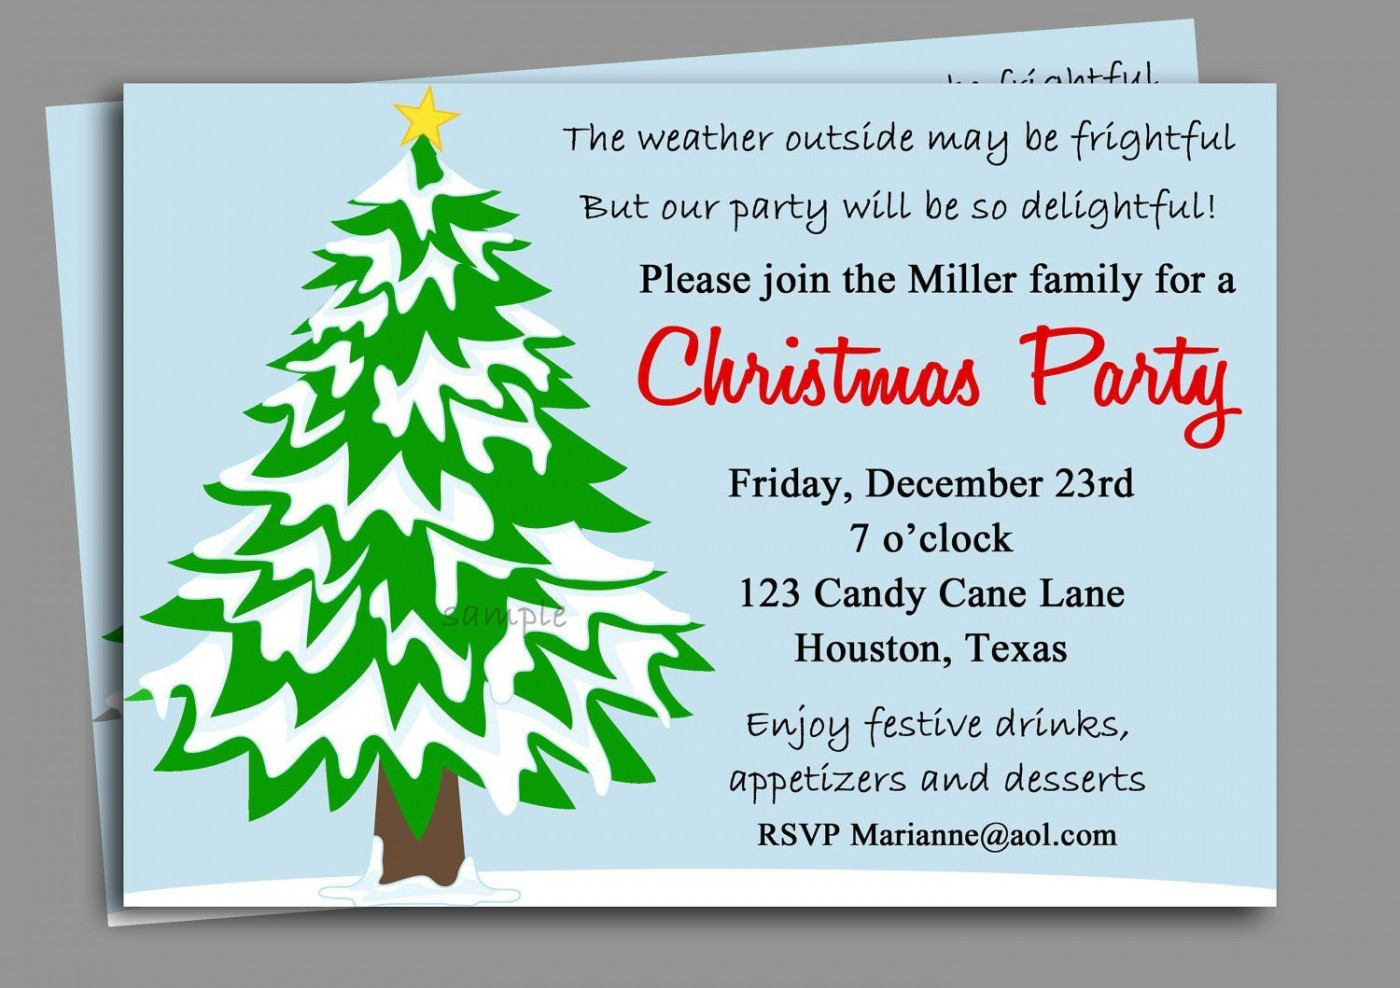 008 Striking Office Christma Party Invitation Wording Sample Highest Quality  Holiday Example1400